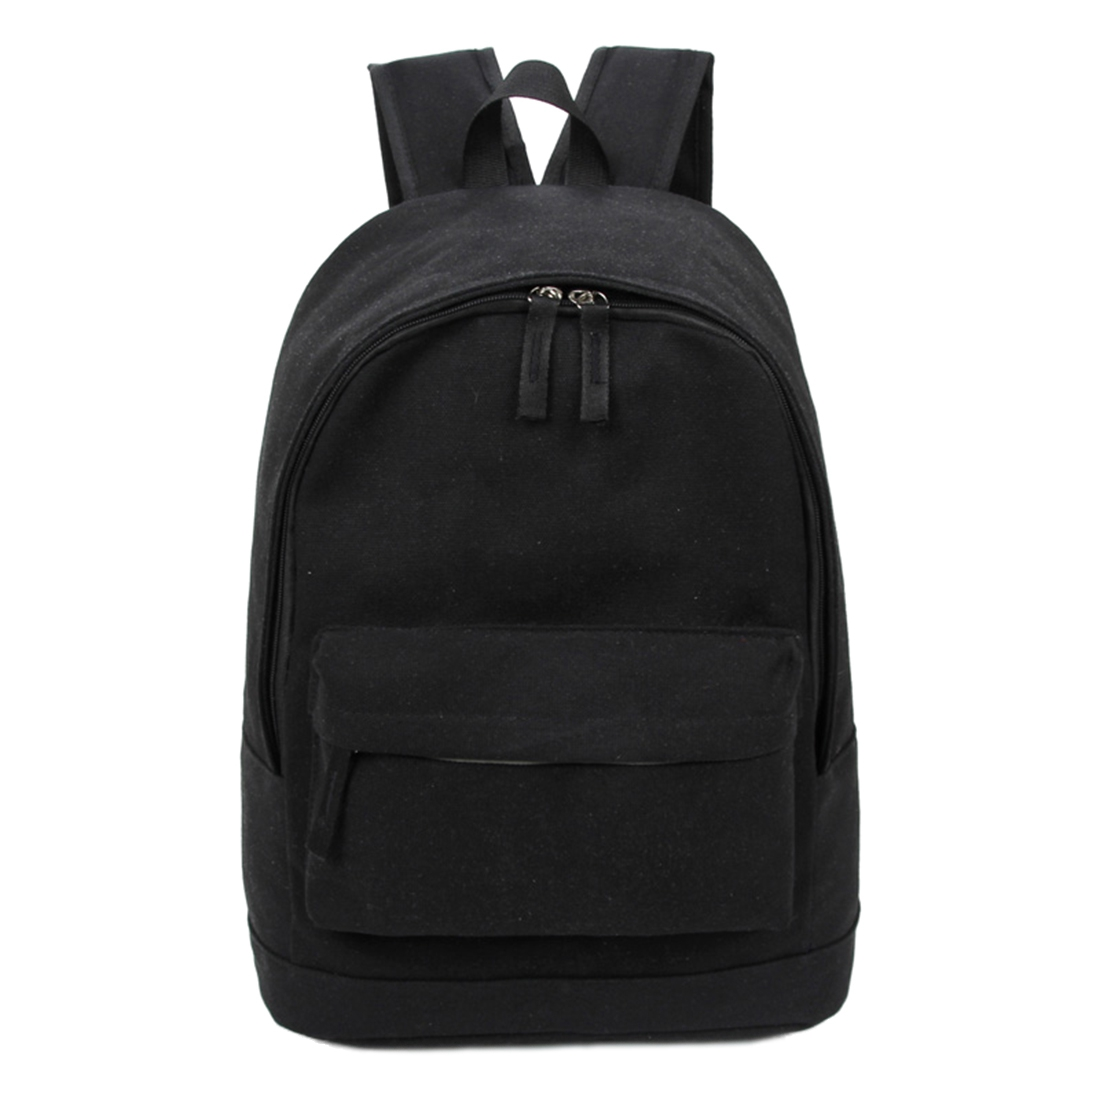 Korea Style Fashion Backpack for Men and Women Preppy Style Soft Back Pack Unisex School Bags Big Capacity Canvas Bag korea style fashion backpacks for men and women solid preppy style soft back pack unisex school bags big capicity canvas bag